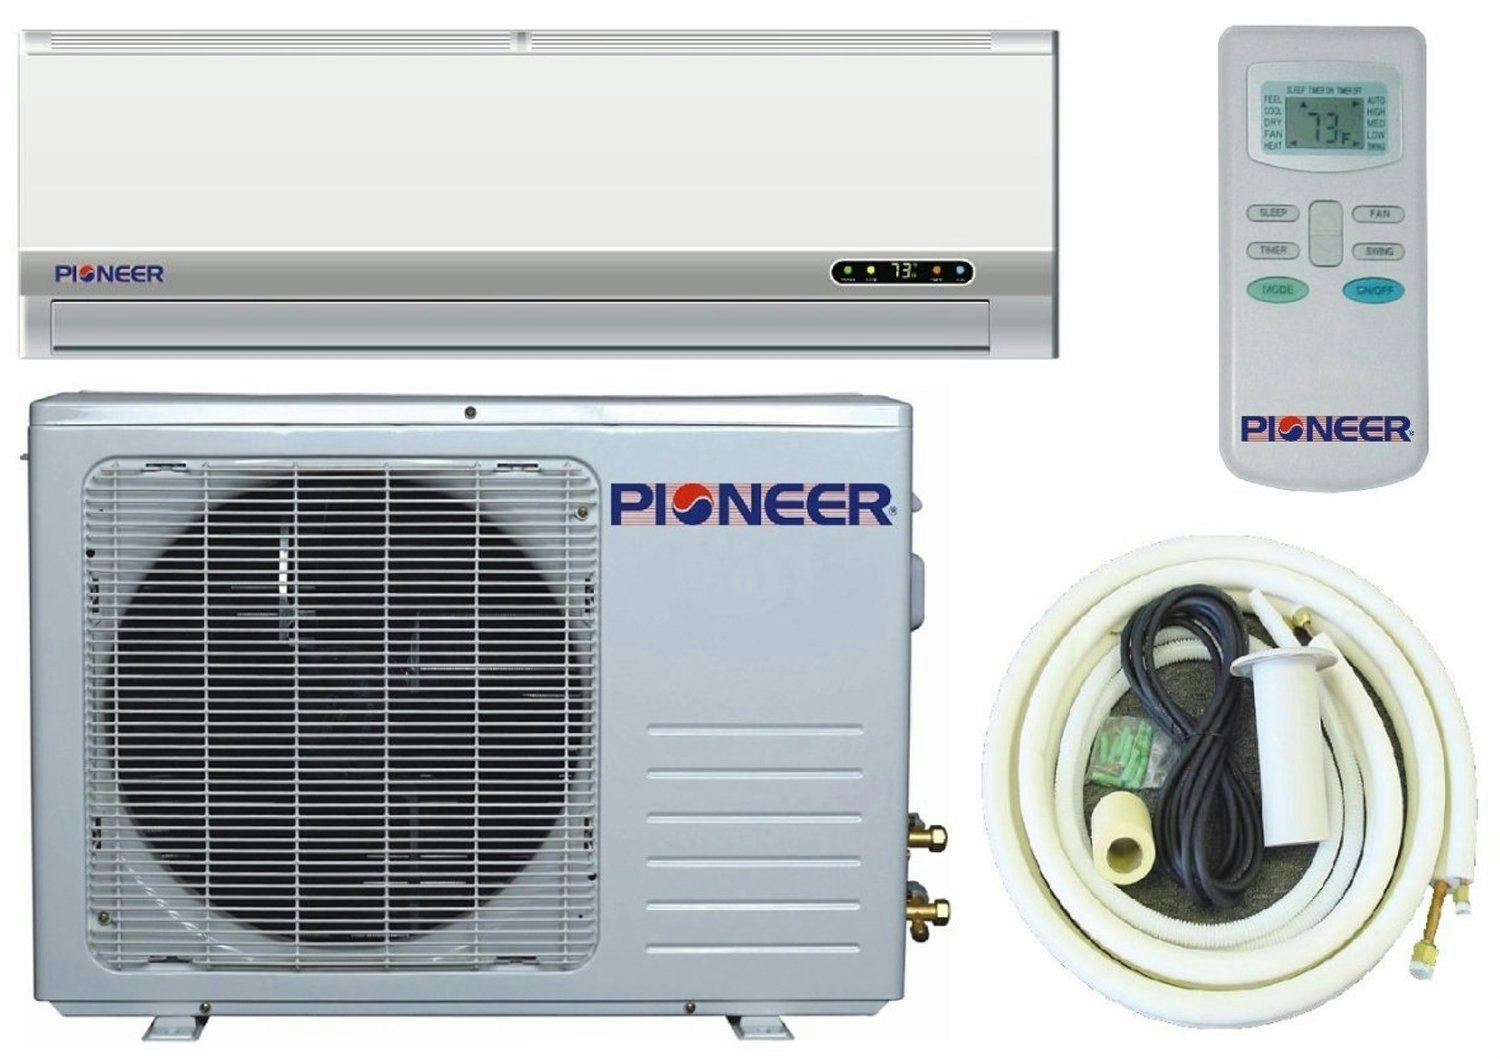 #383D63 Pioneer Ductless Mini Split Air Conditioner Heat Pump  Most Effective 10665 Air Conditioners Ebay pictures with 1500x1059 px on helpvideos.info - Air Conditioners, Air Coolers and more